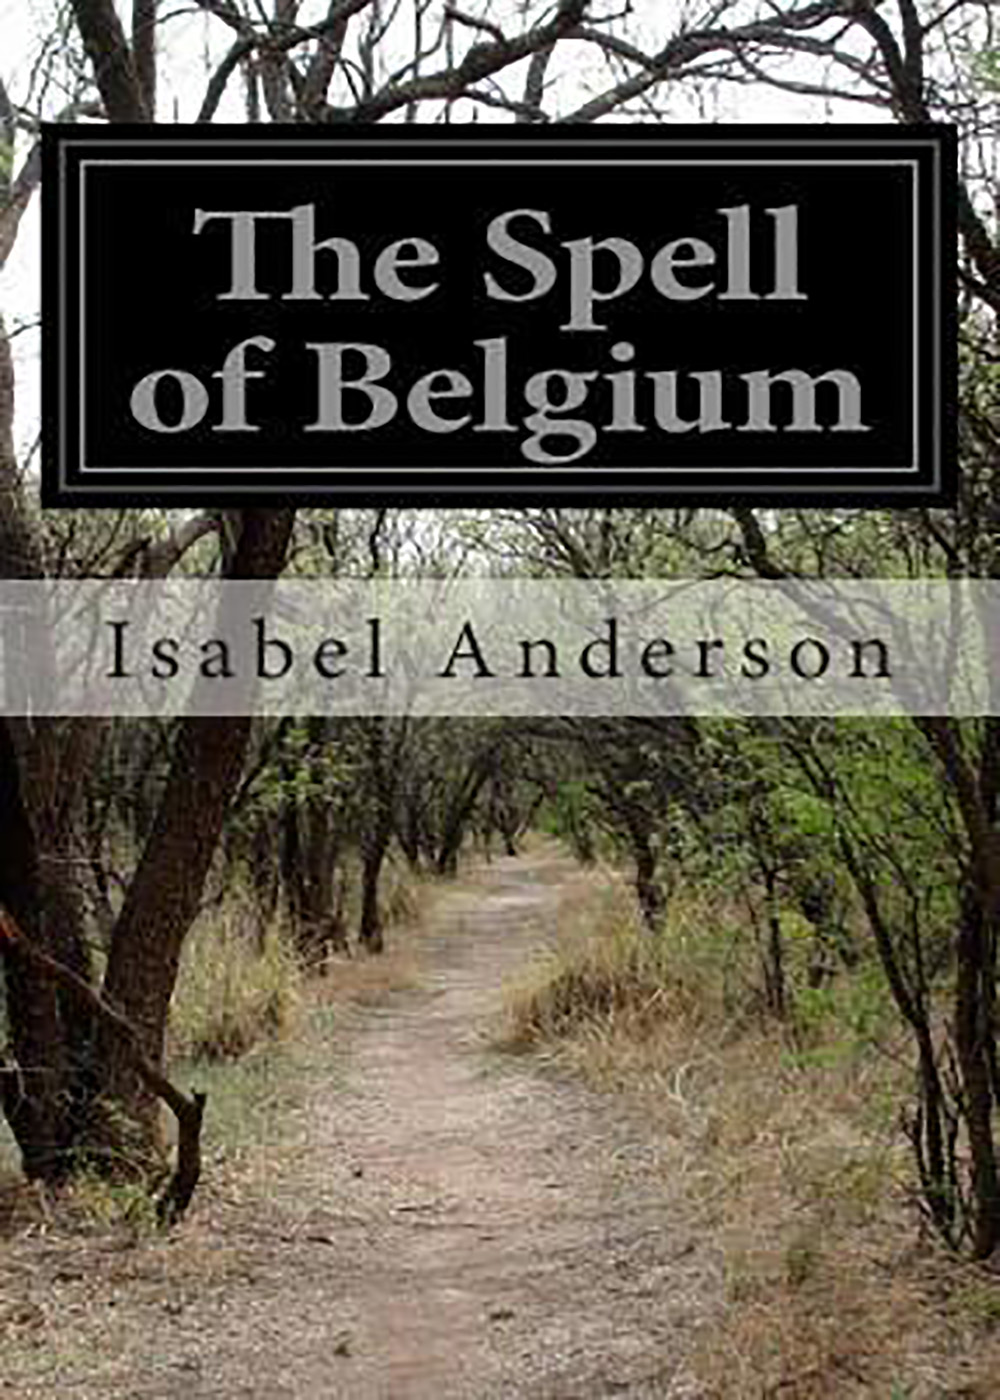 Isabel Anderson - The Spell of Belgium